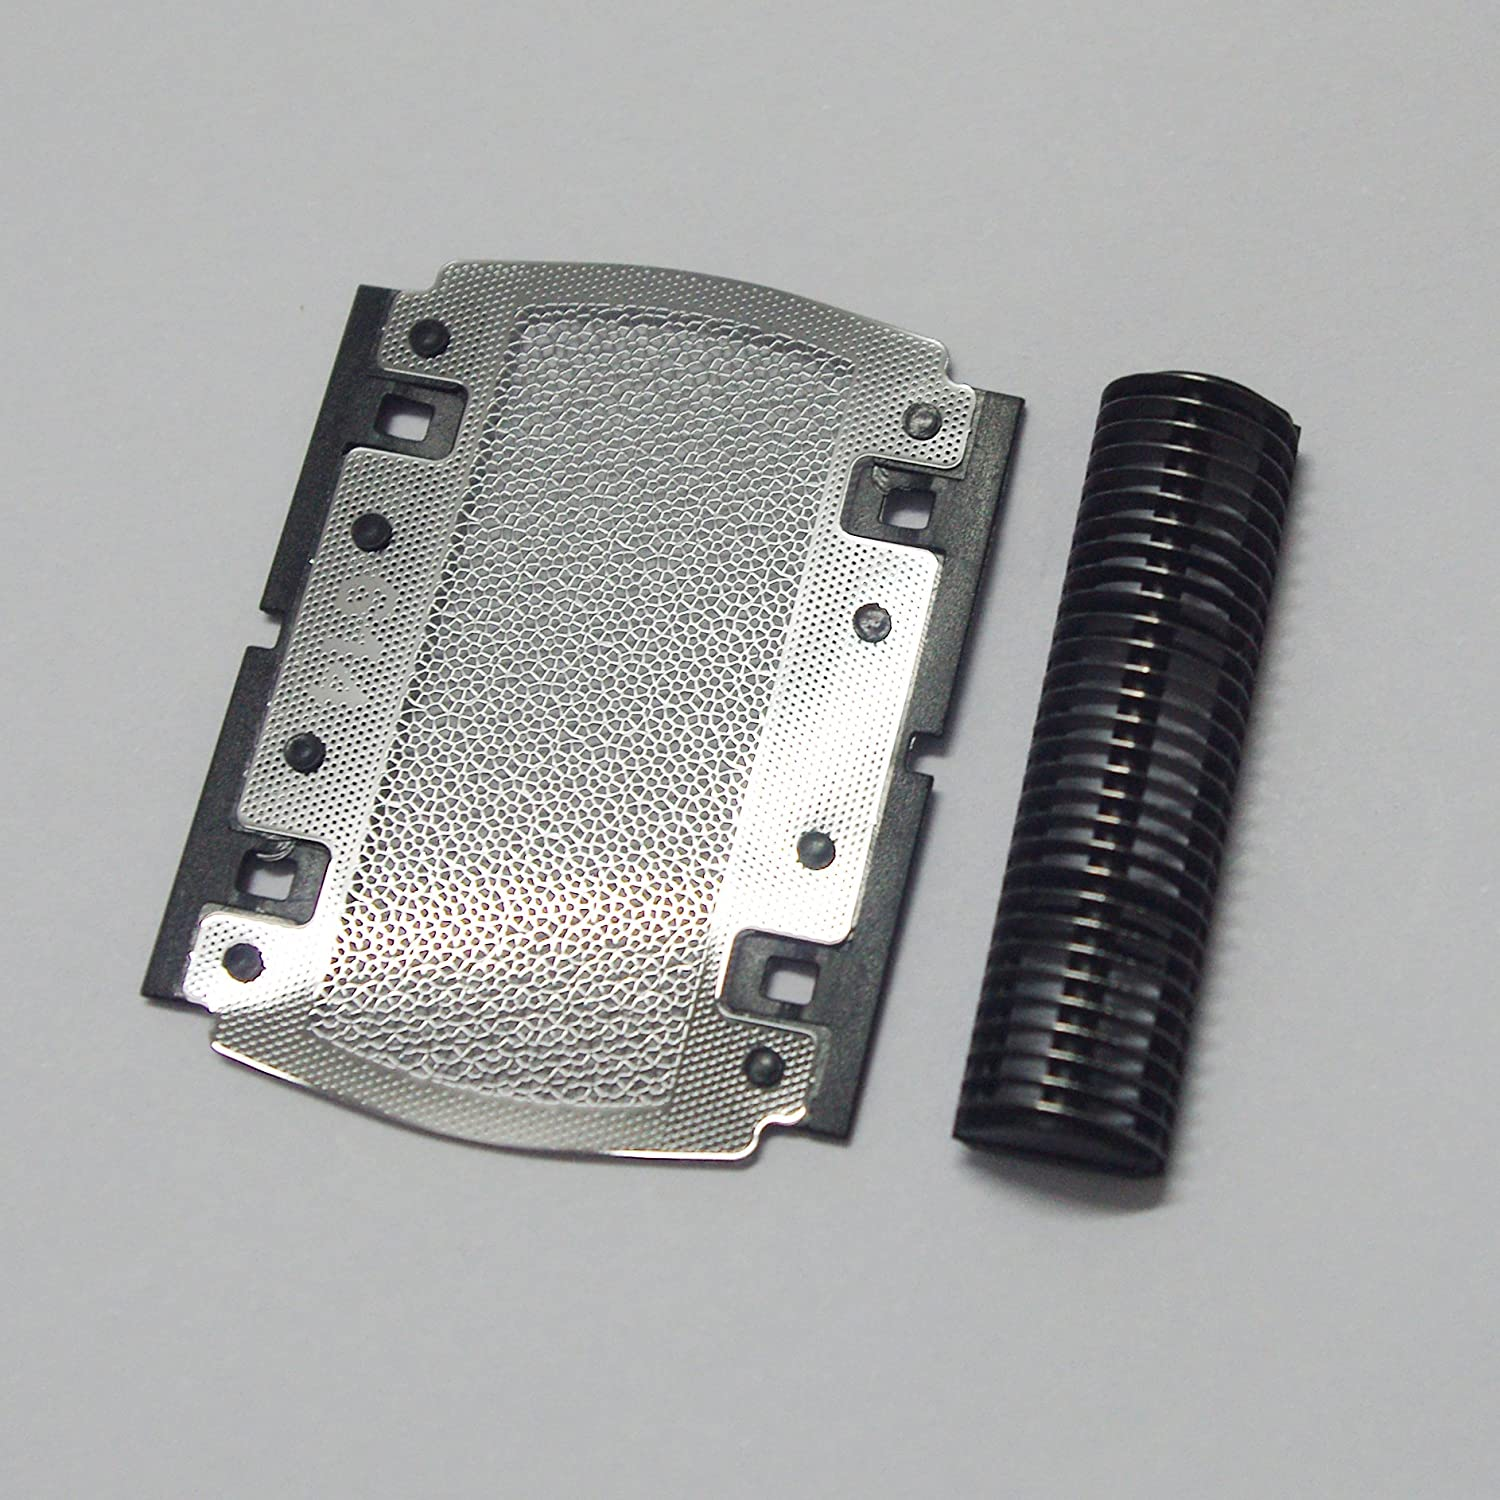 Shaver/Razor Replacement Foil&Cutters for BRAUN 350 355 370 375 5614 5615 P10 Free Shipping by Ronsit